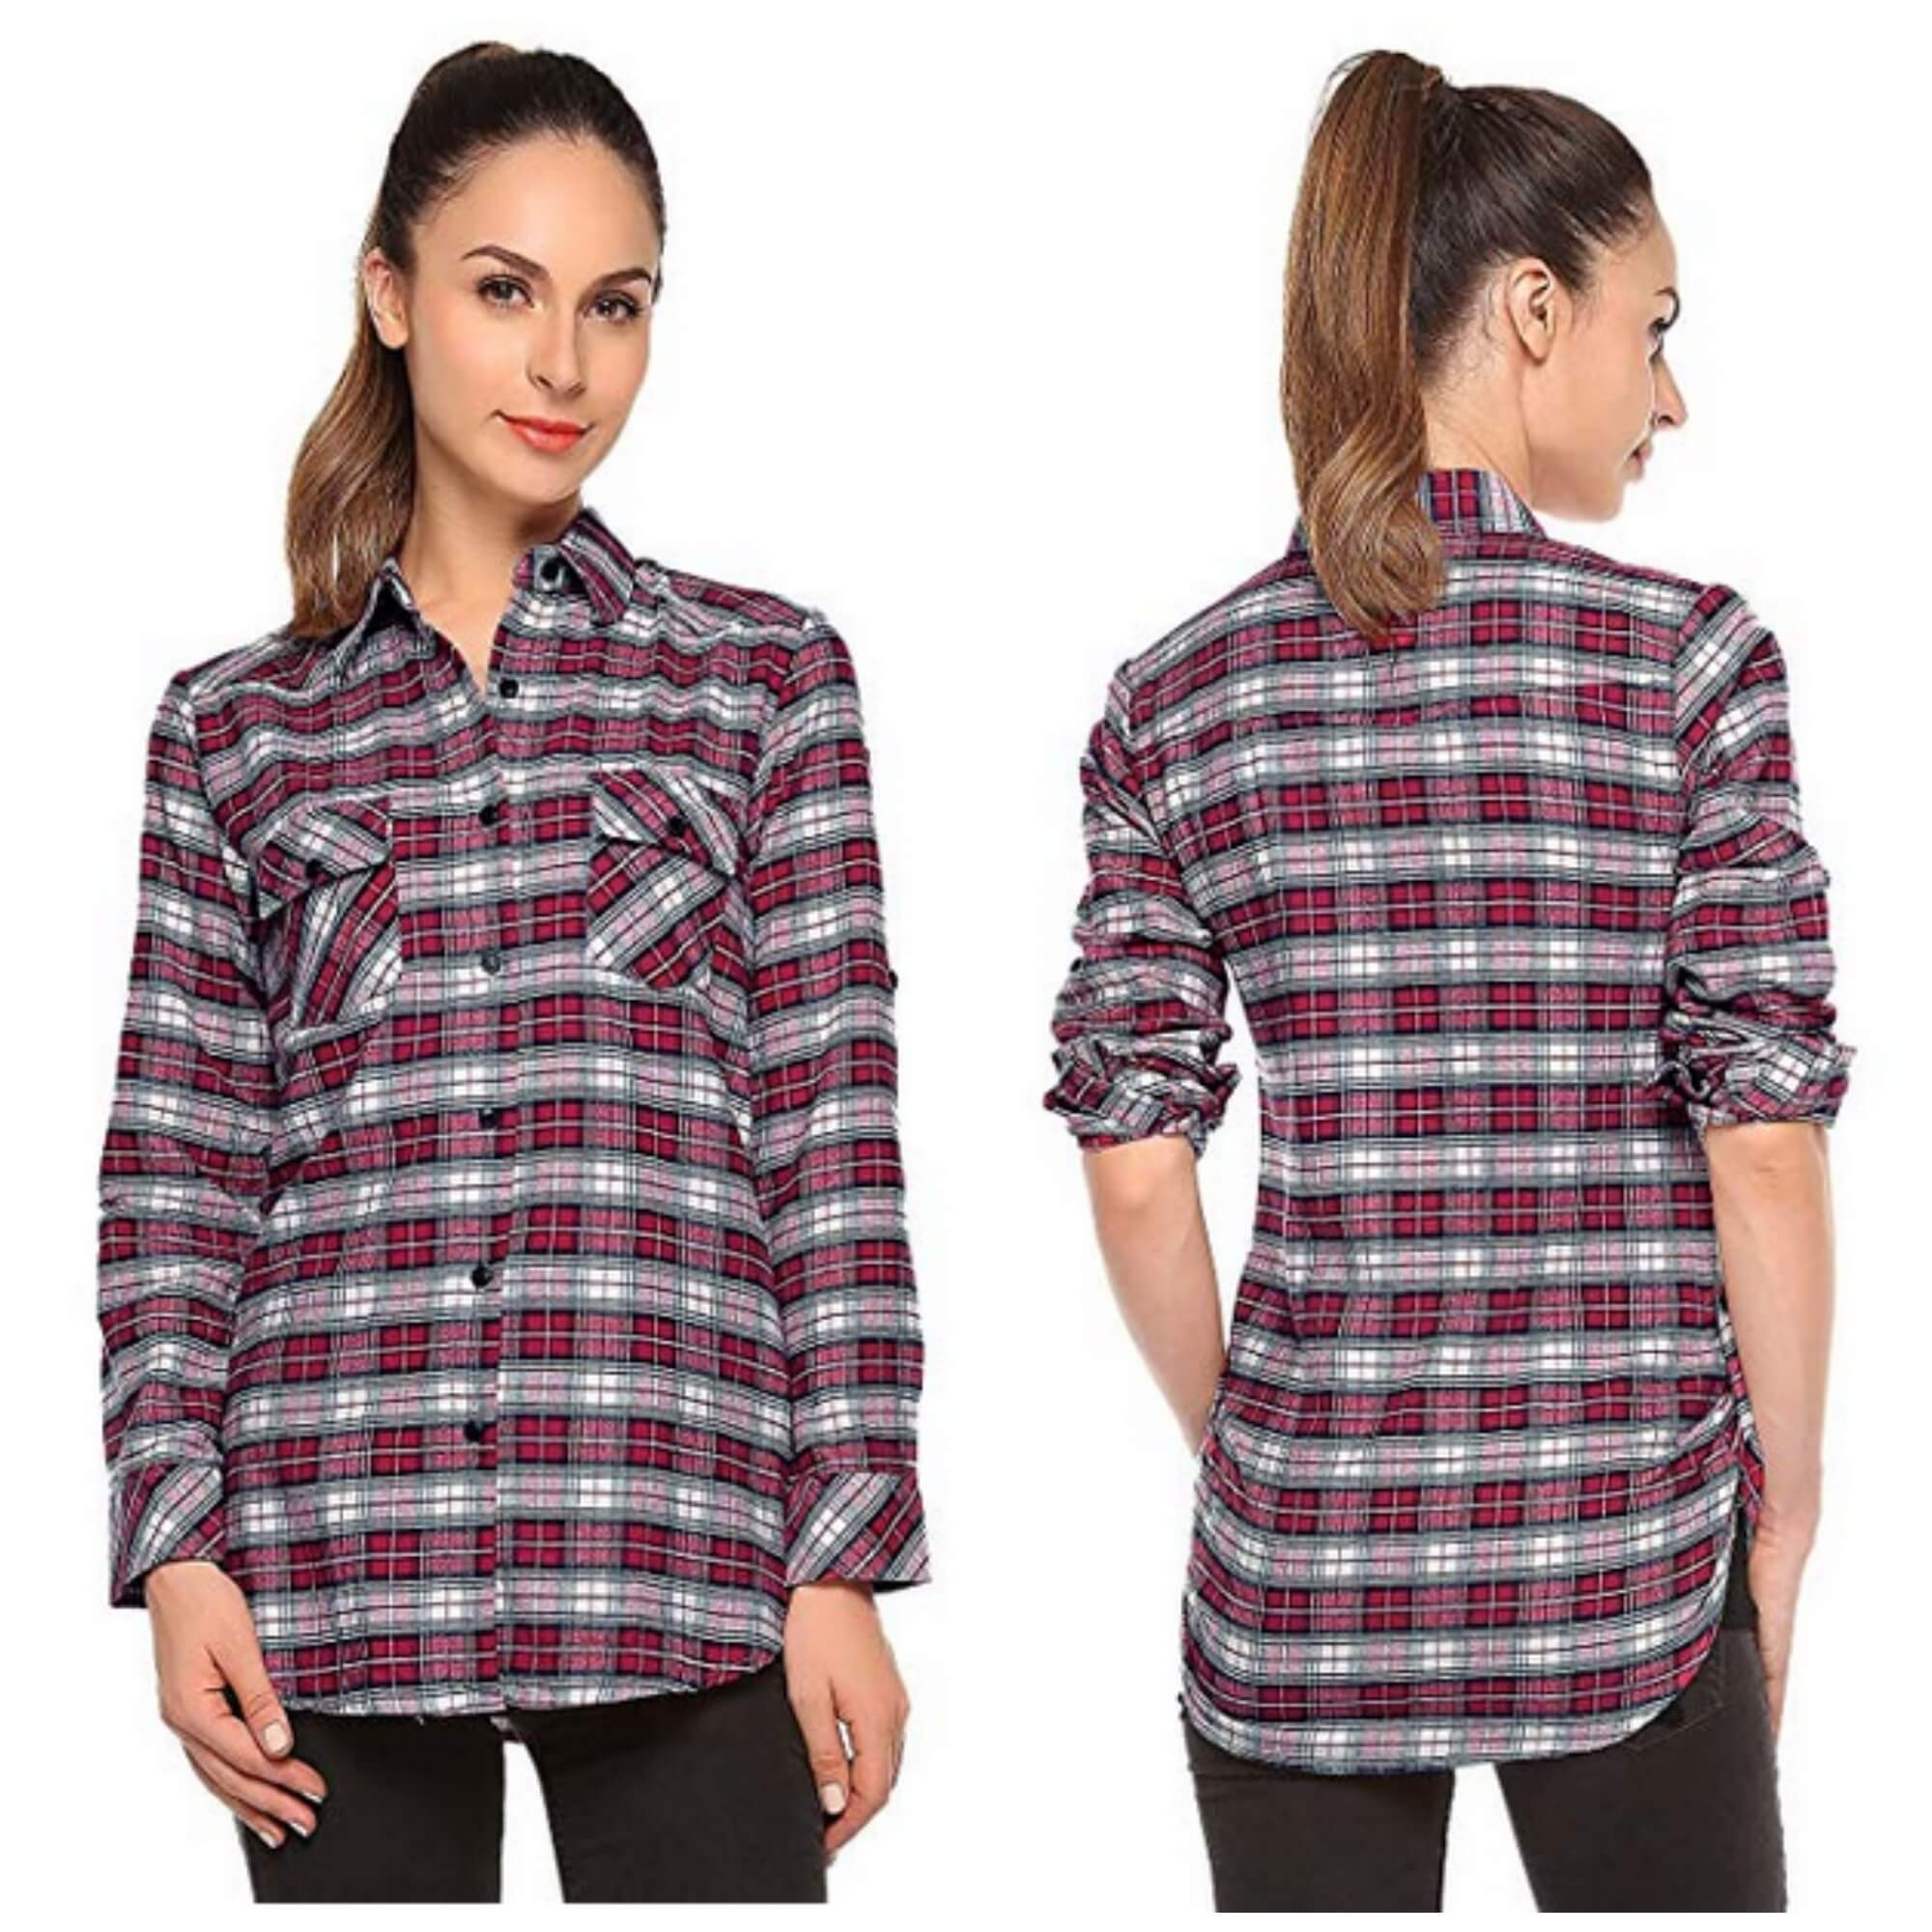 124d8e244b9 The Best Flannel Shirts on Amazon for under  20.00 (Women s Edition ...